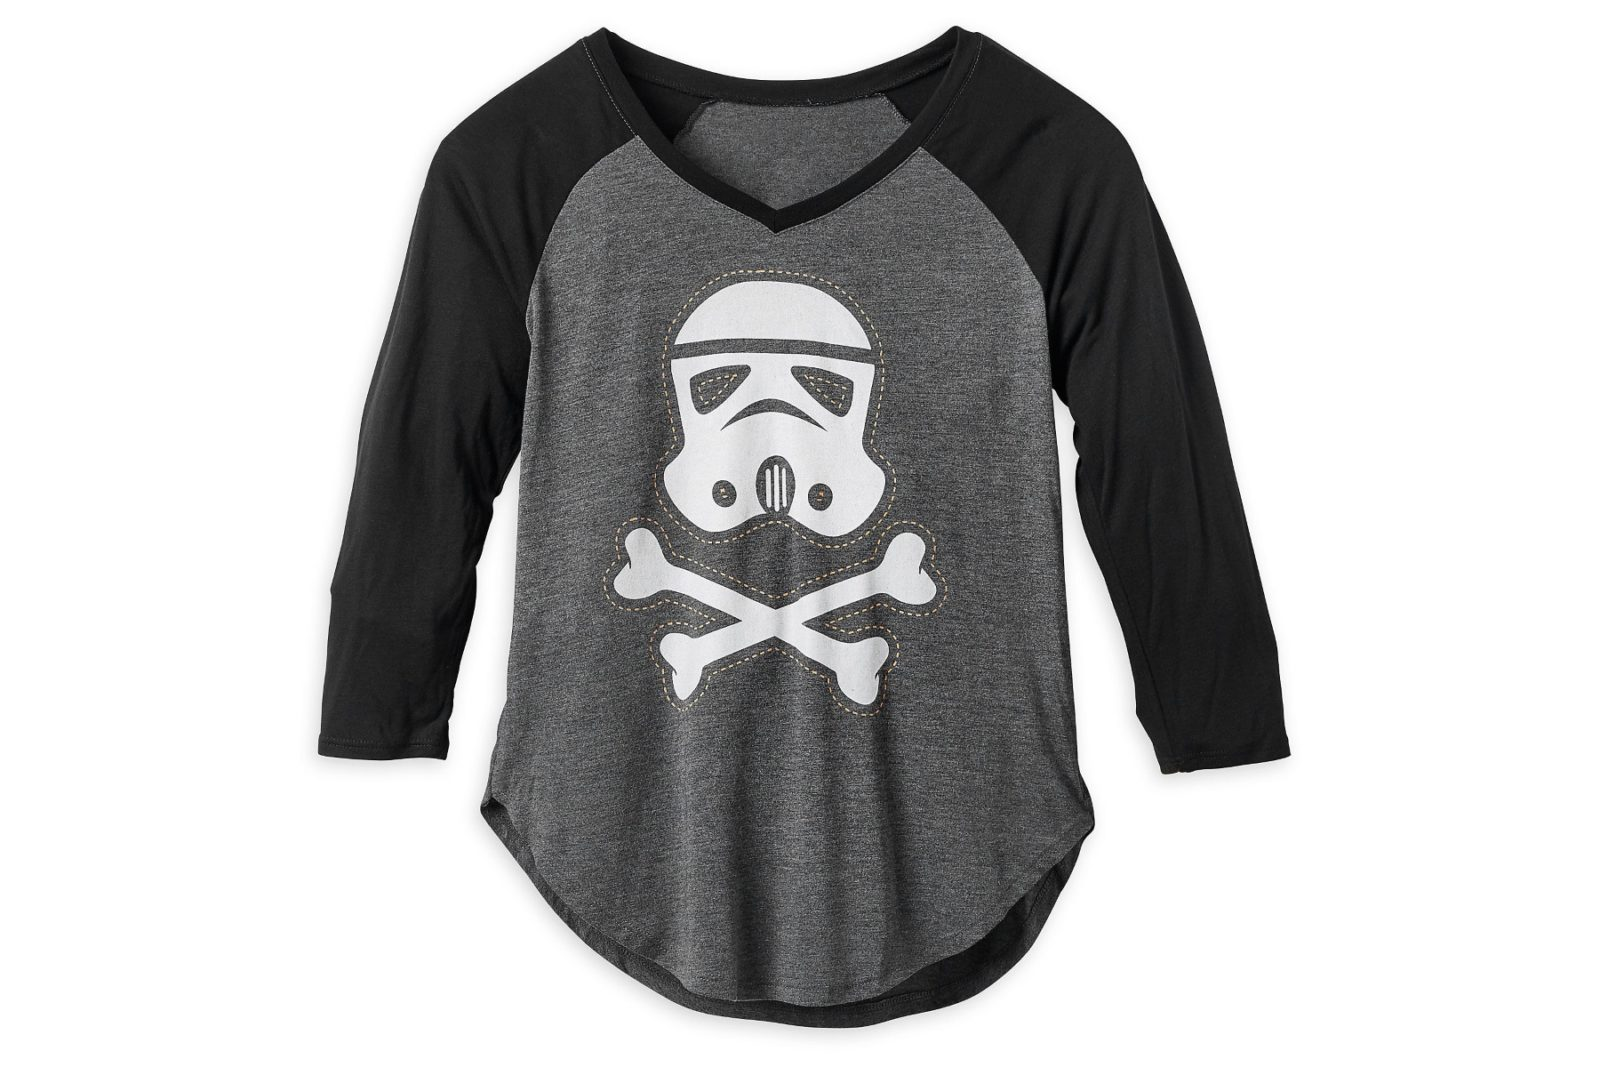 Halloween Stormtrooper Tee at Shop Disney